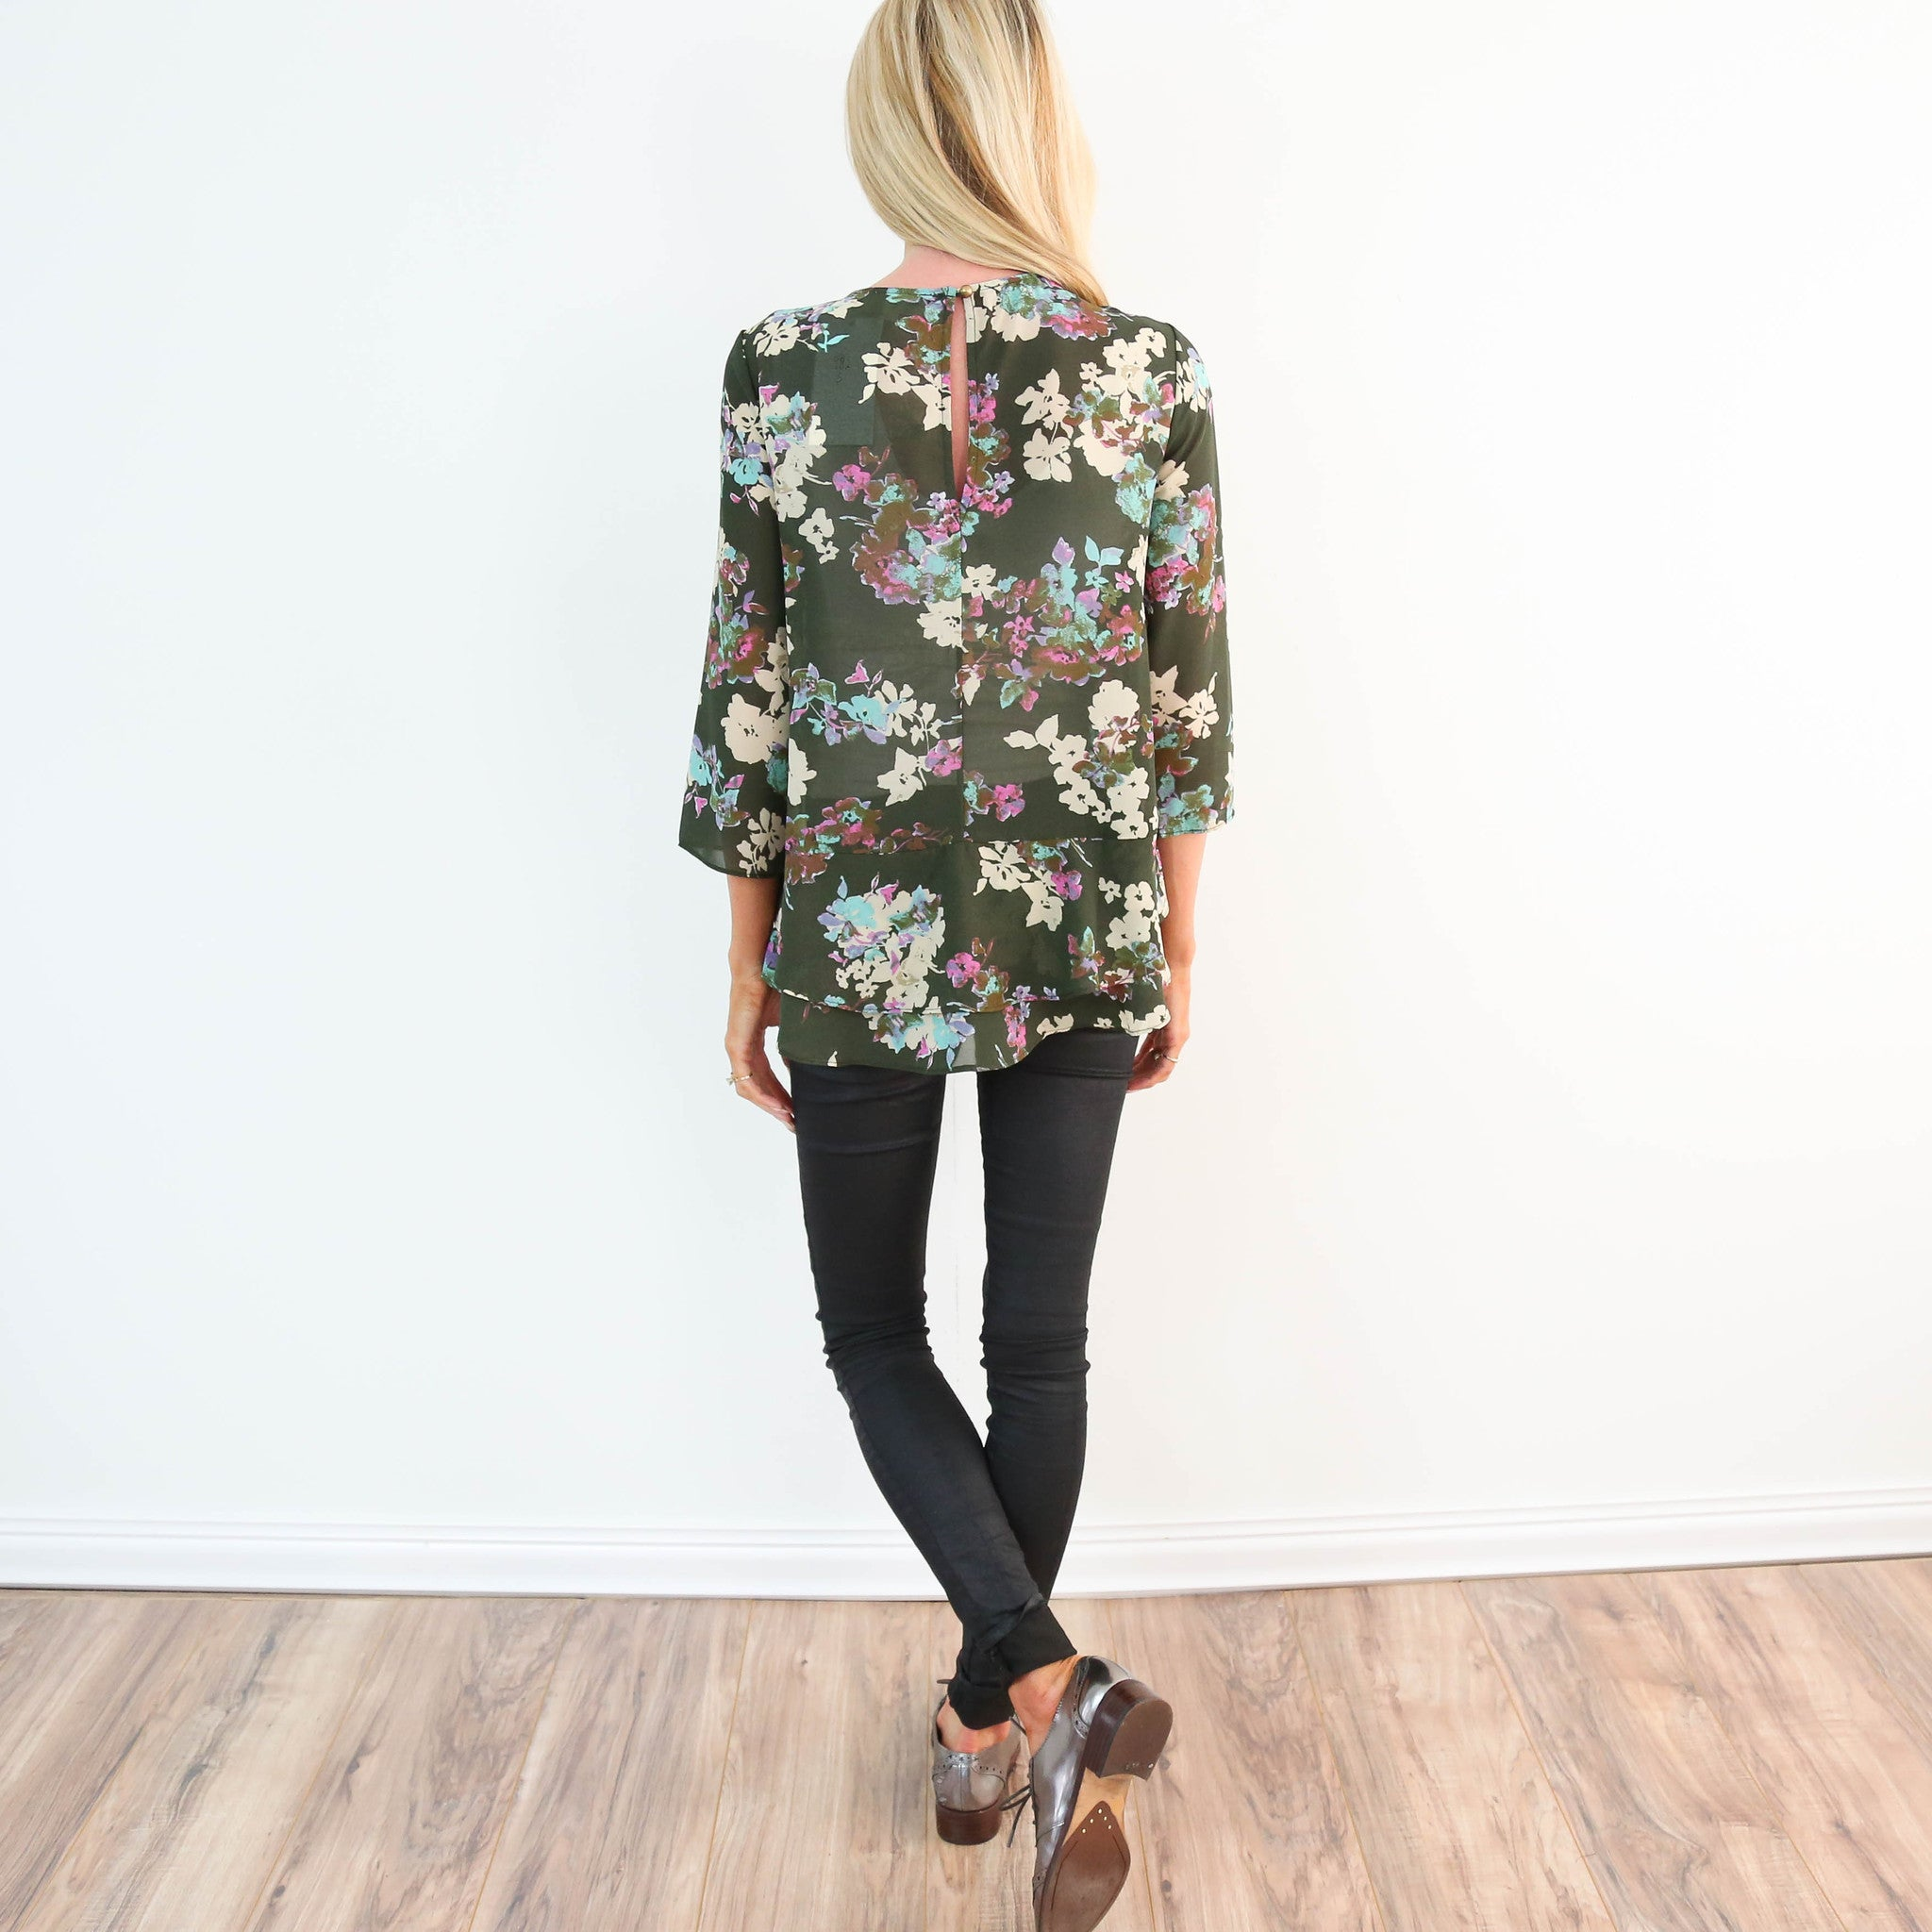 Madrid Floral Top